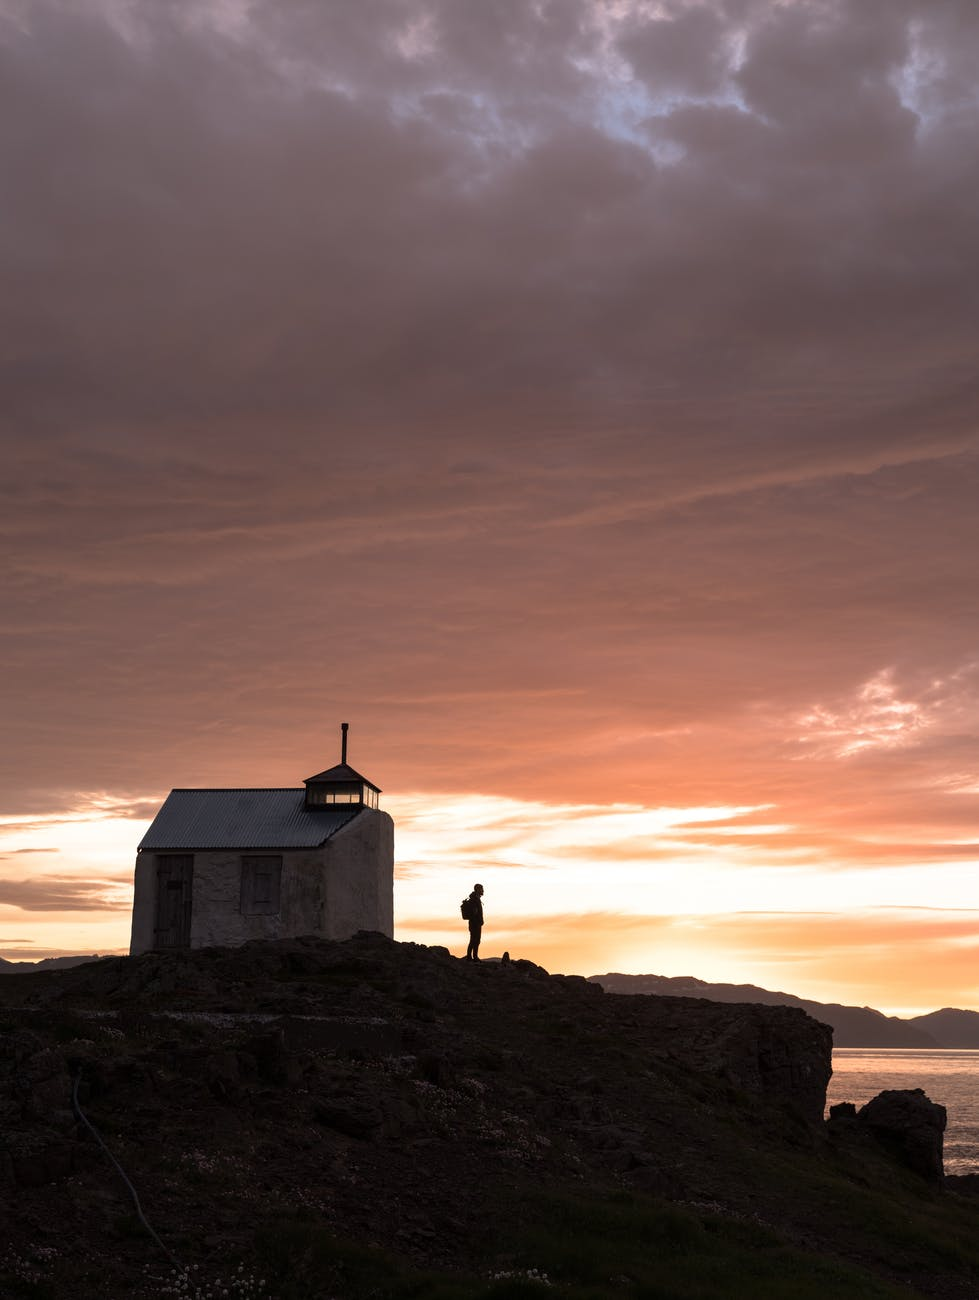 remote house and silhouette on rocky seashore